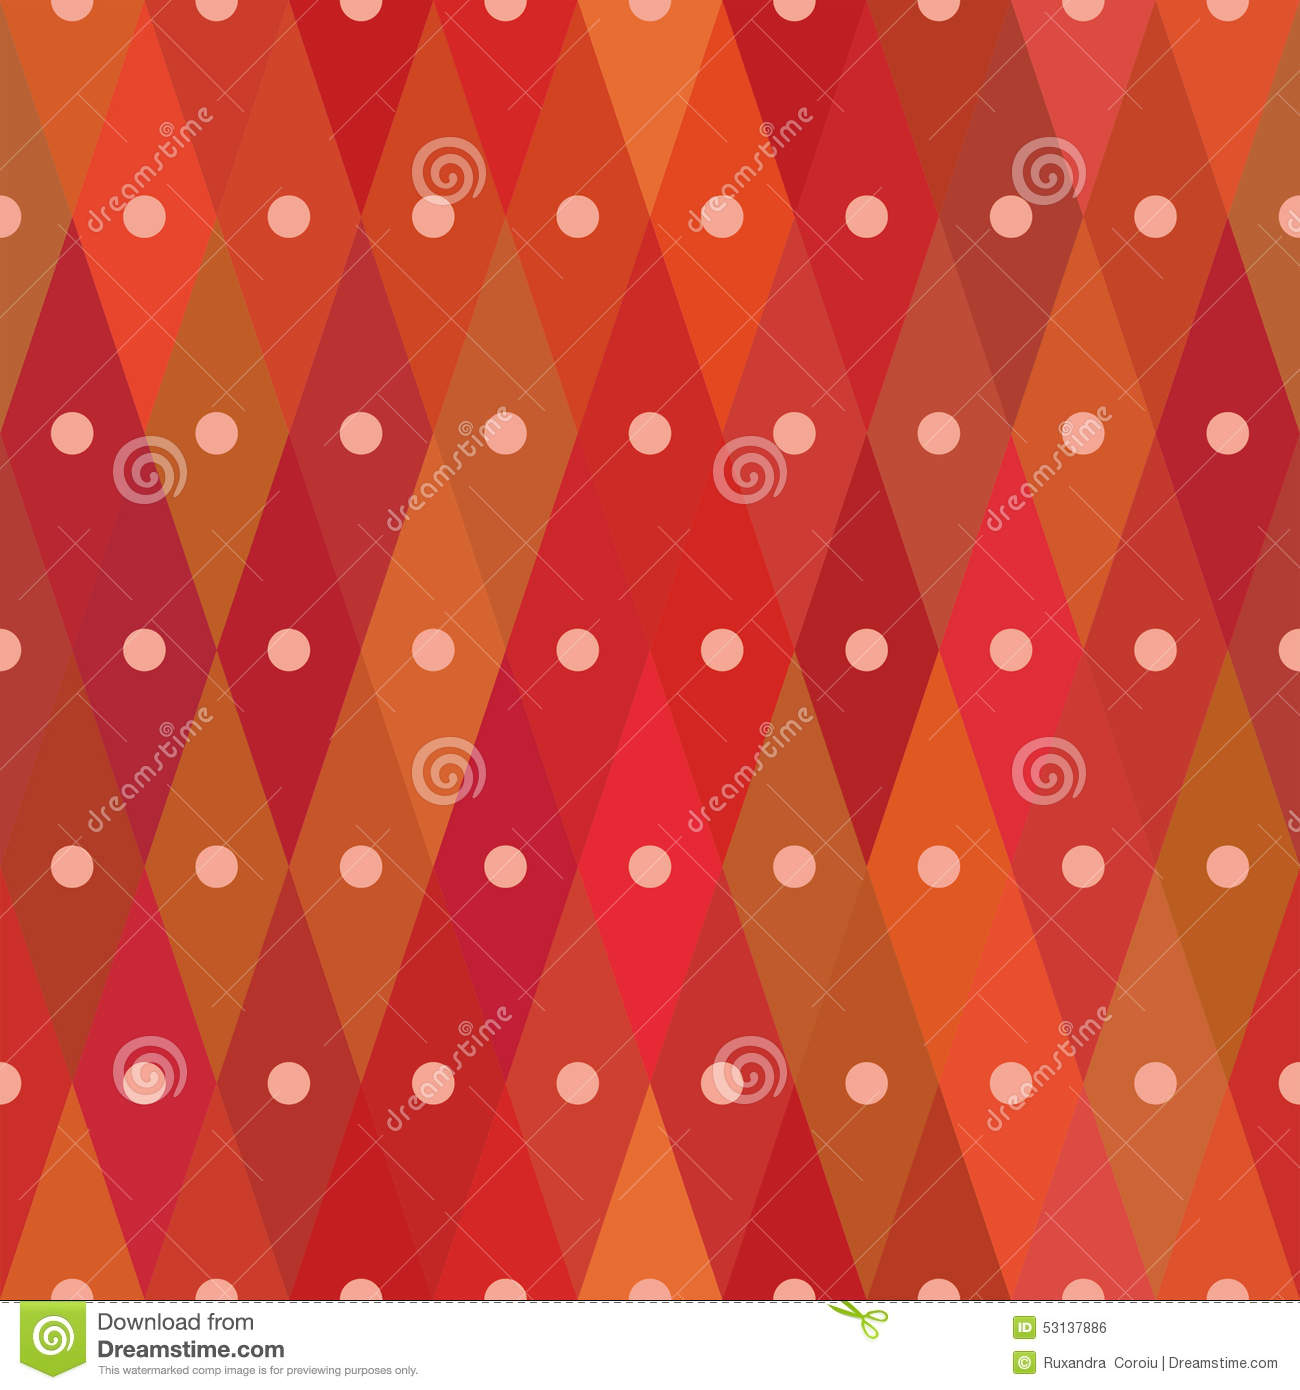 Diamond Shaped Red Seamless Pattern With Centered Dots Repetitive – Dot Paper Template